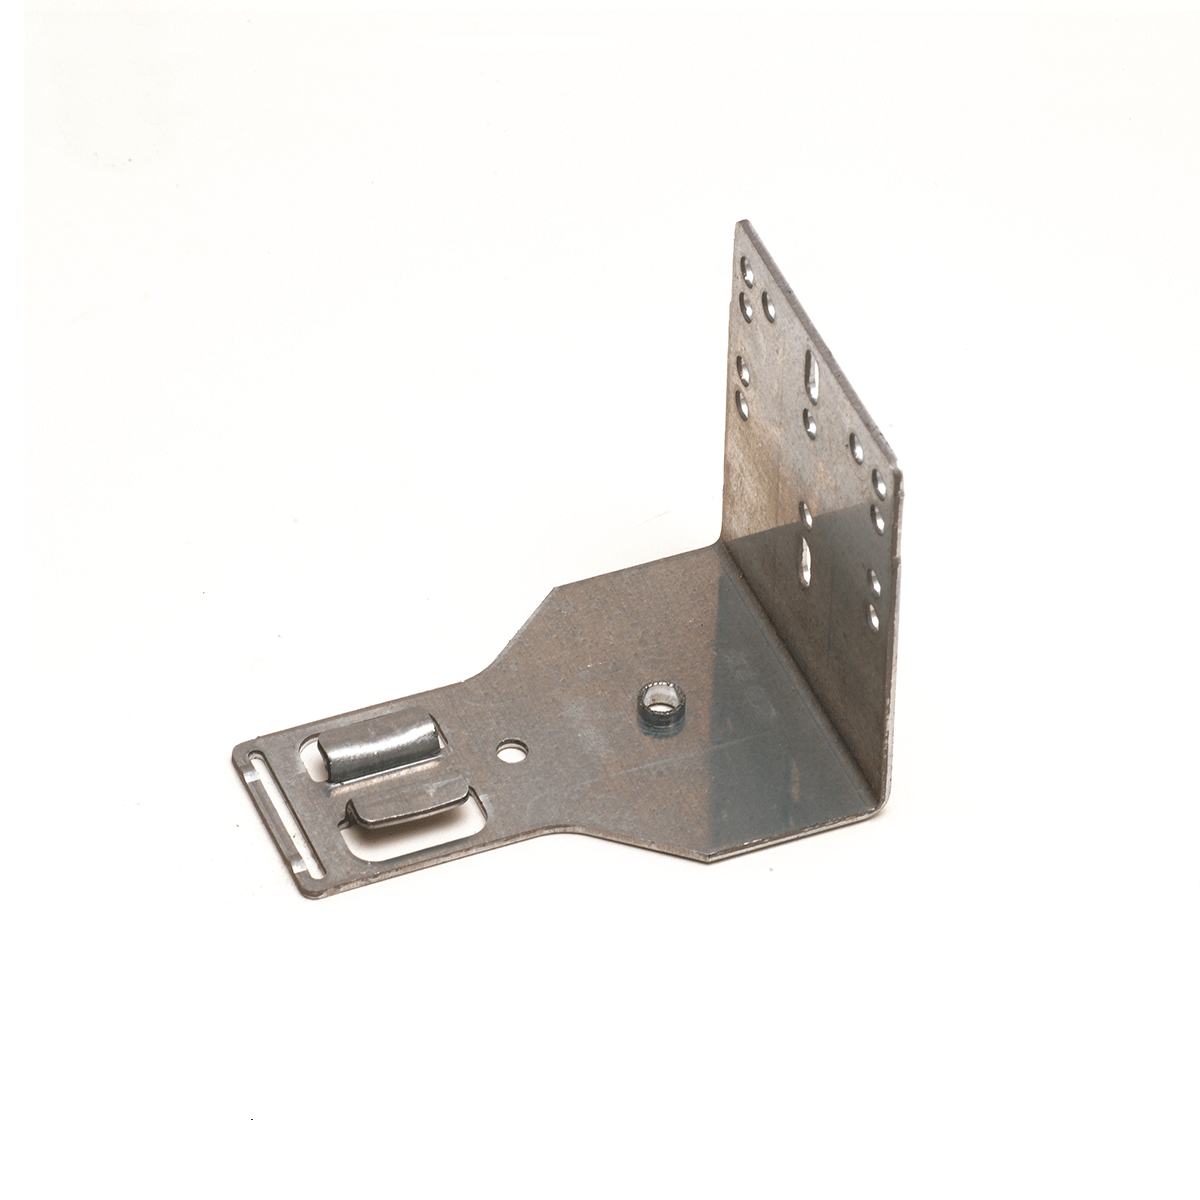 Salice AGSKXXC5, Rear Mounting Brackets for Futura Drawer Slide